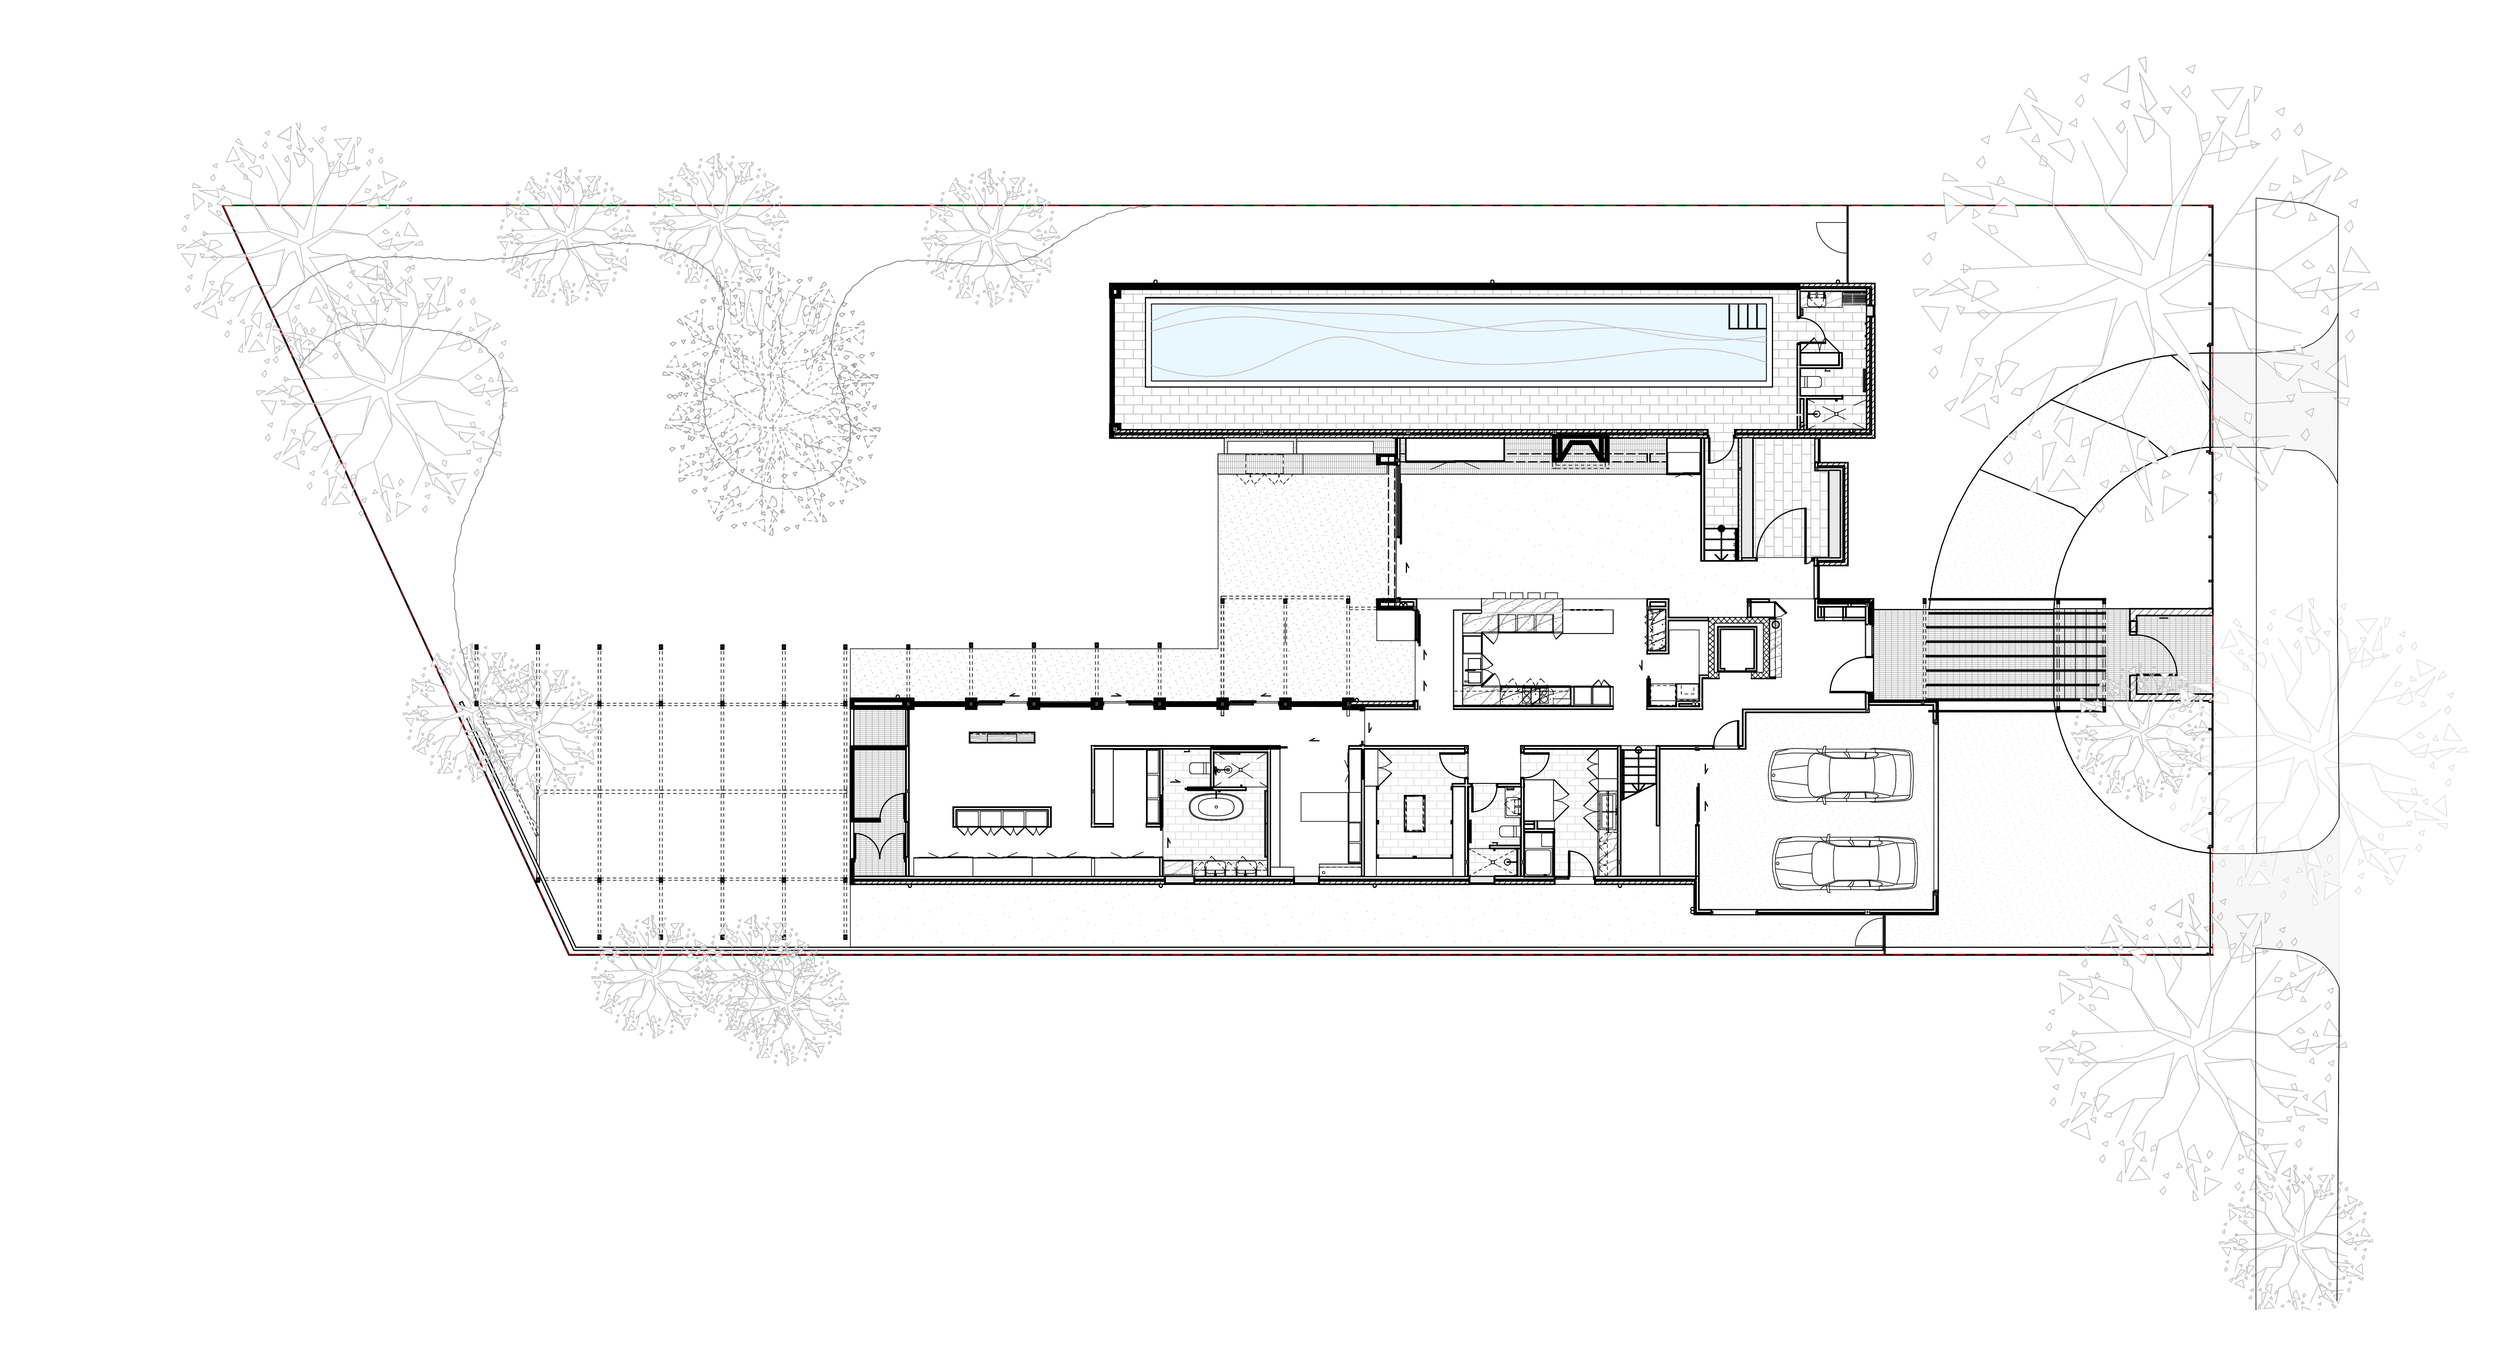 Garden house plan by Chamberlain Archtects